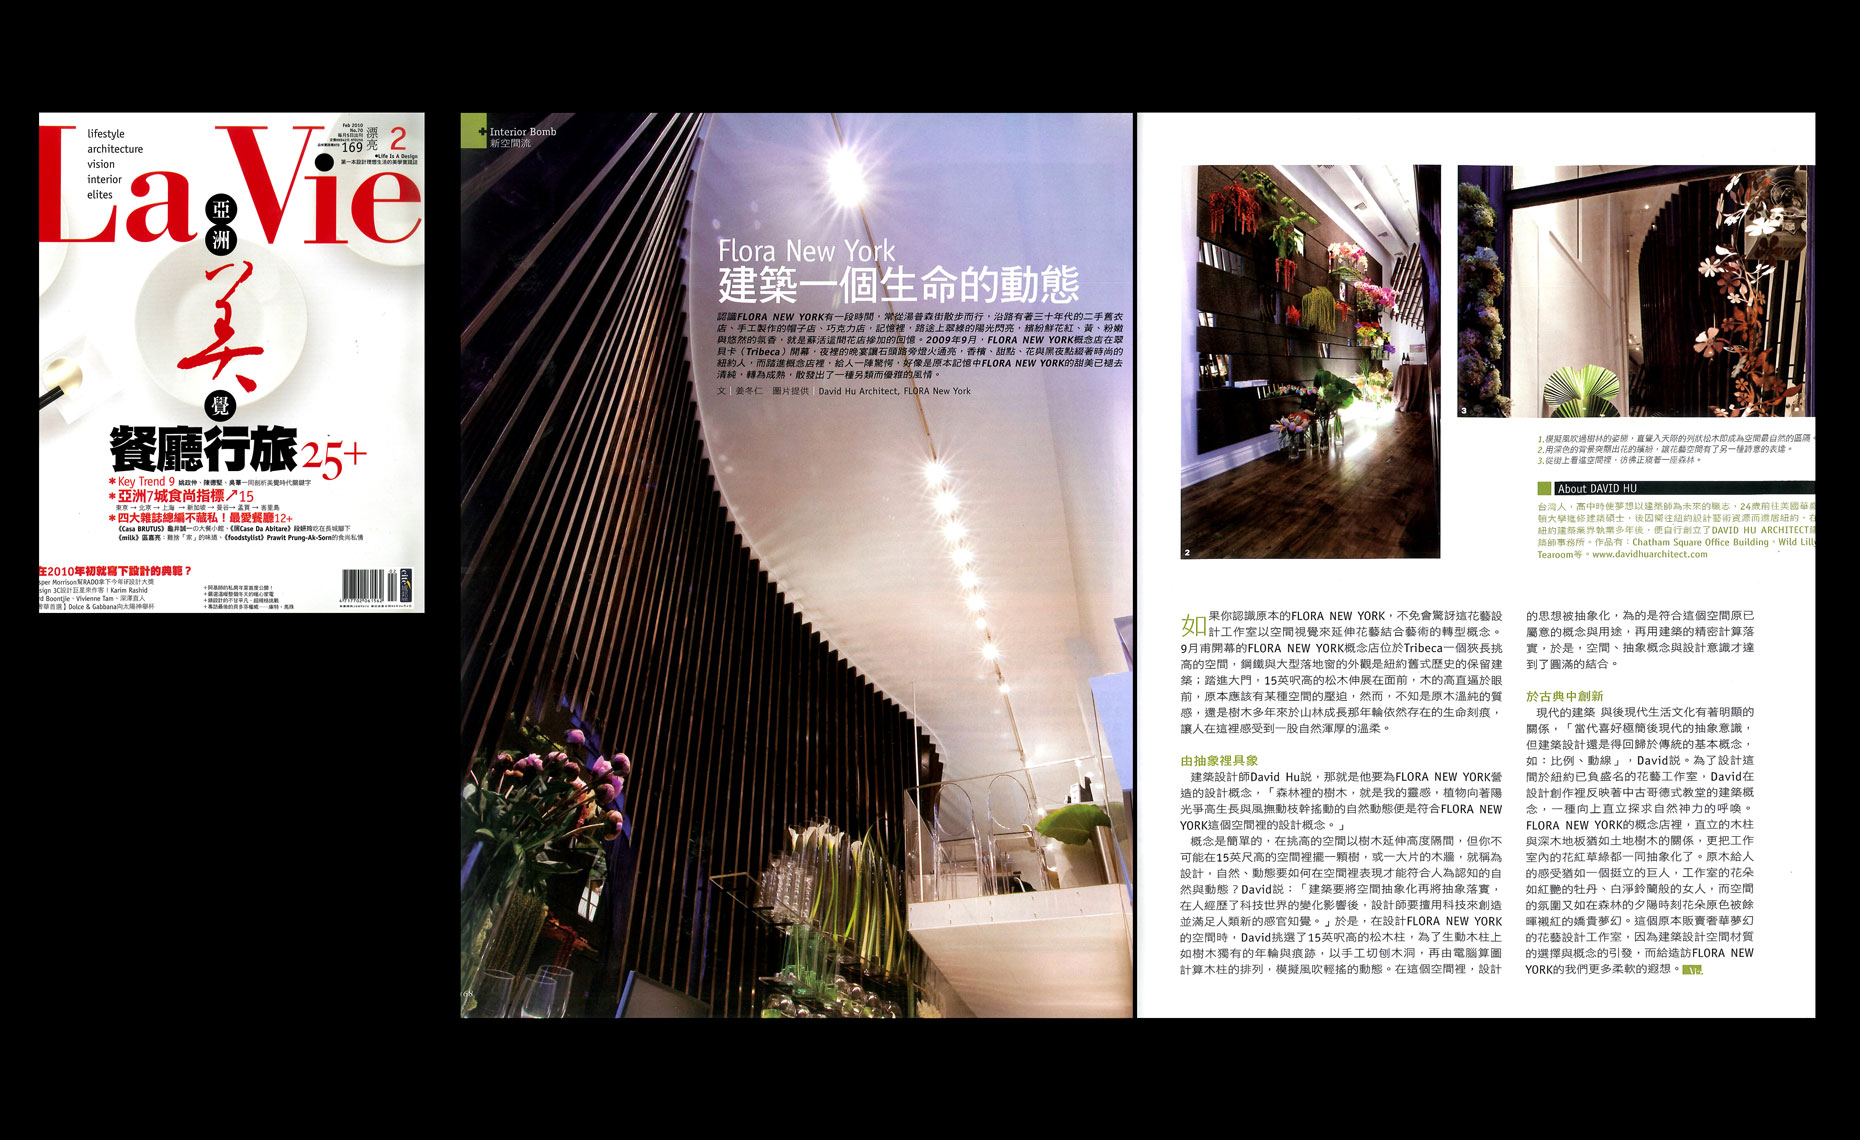 david-hu-architect-press_09.jpg